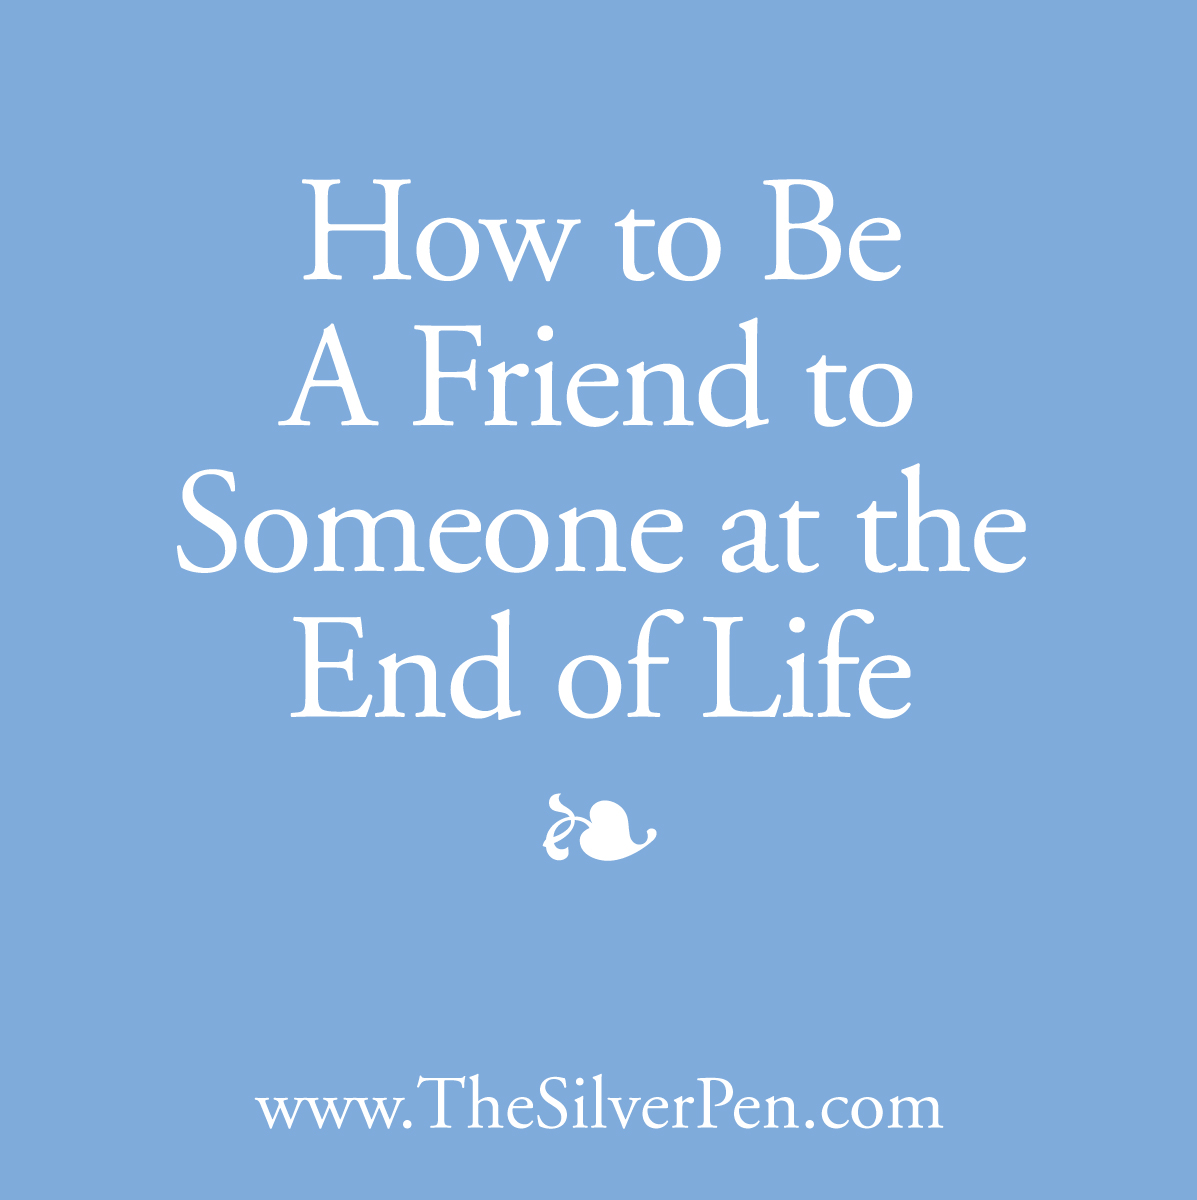 End Of Life Quotes Inspirational: Friend Dying Of Cancer Quotes. QuotesGram